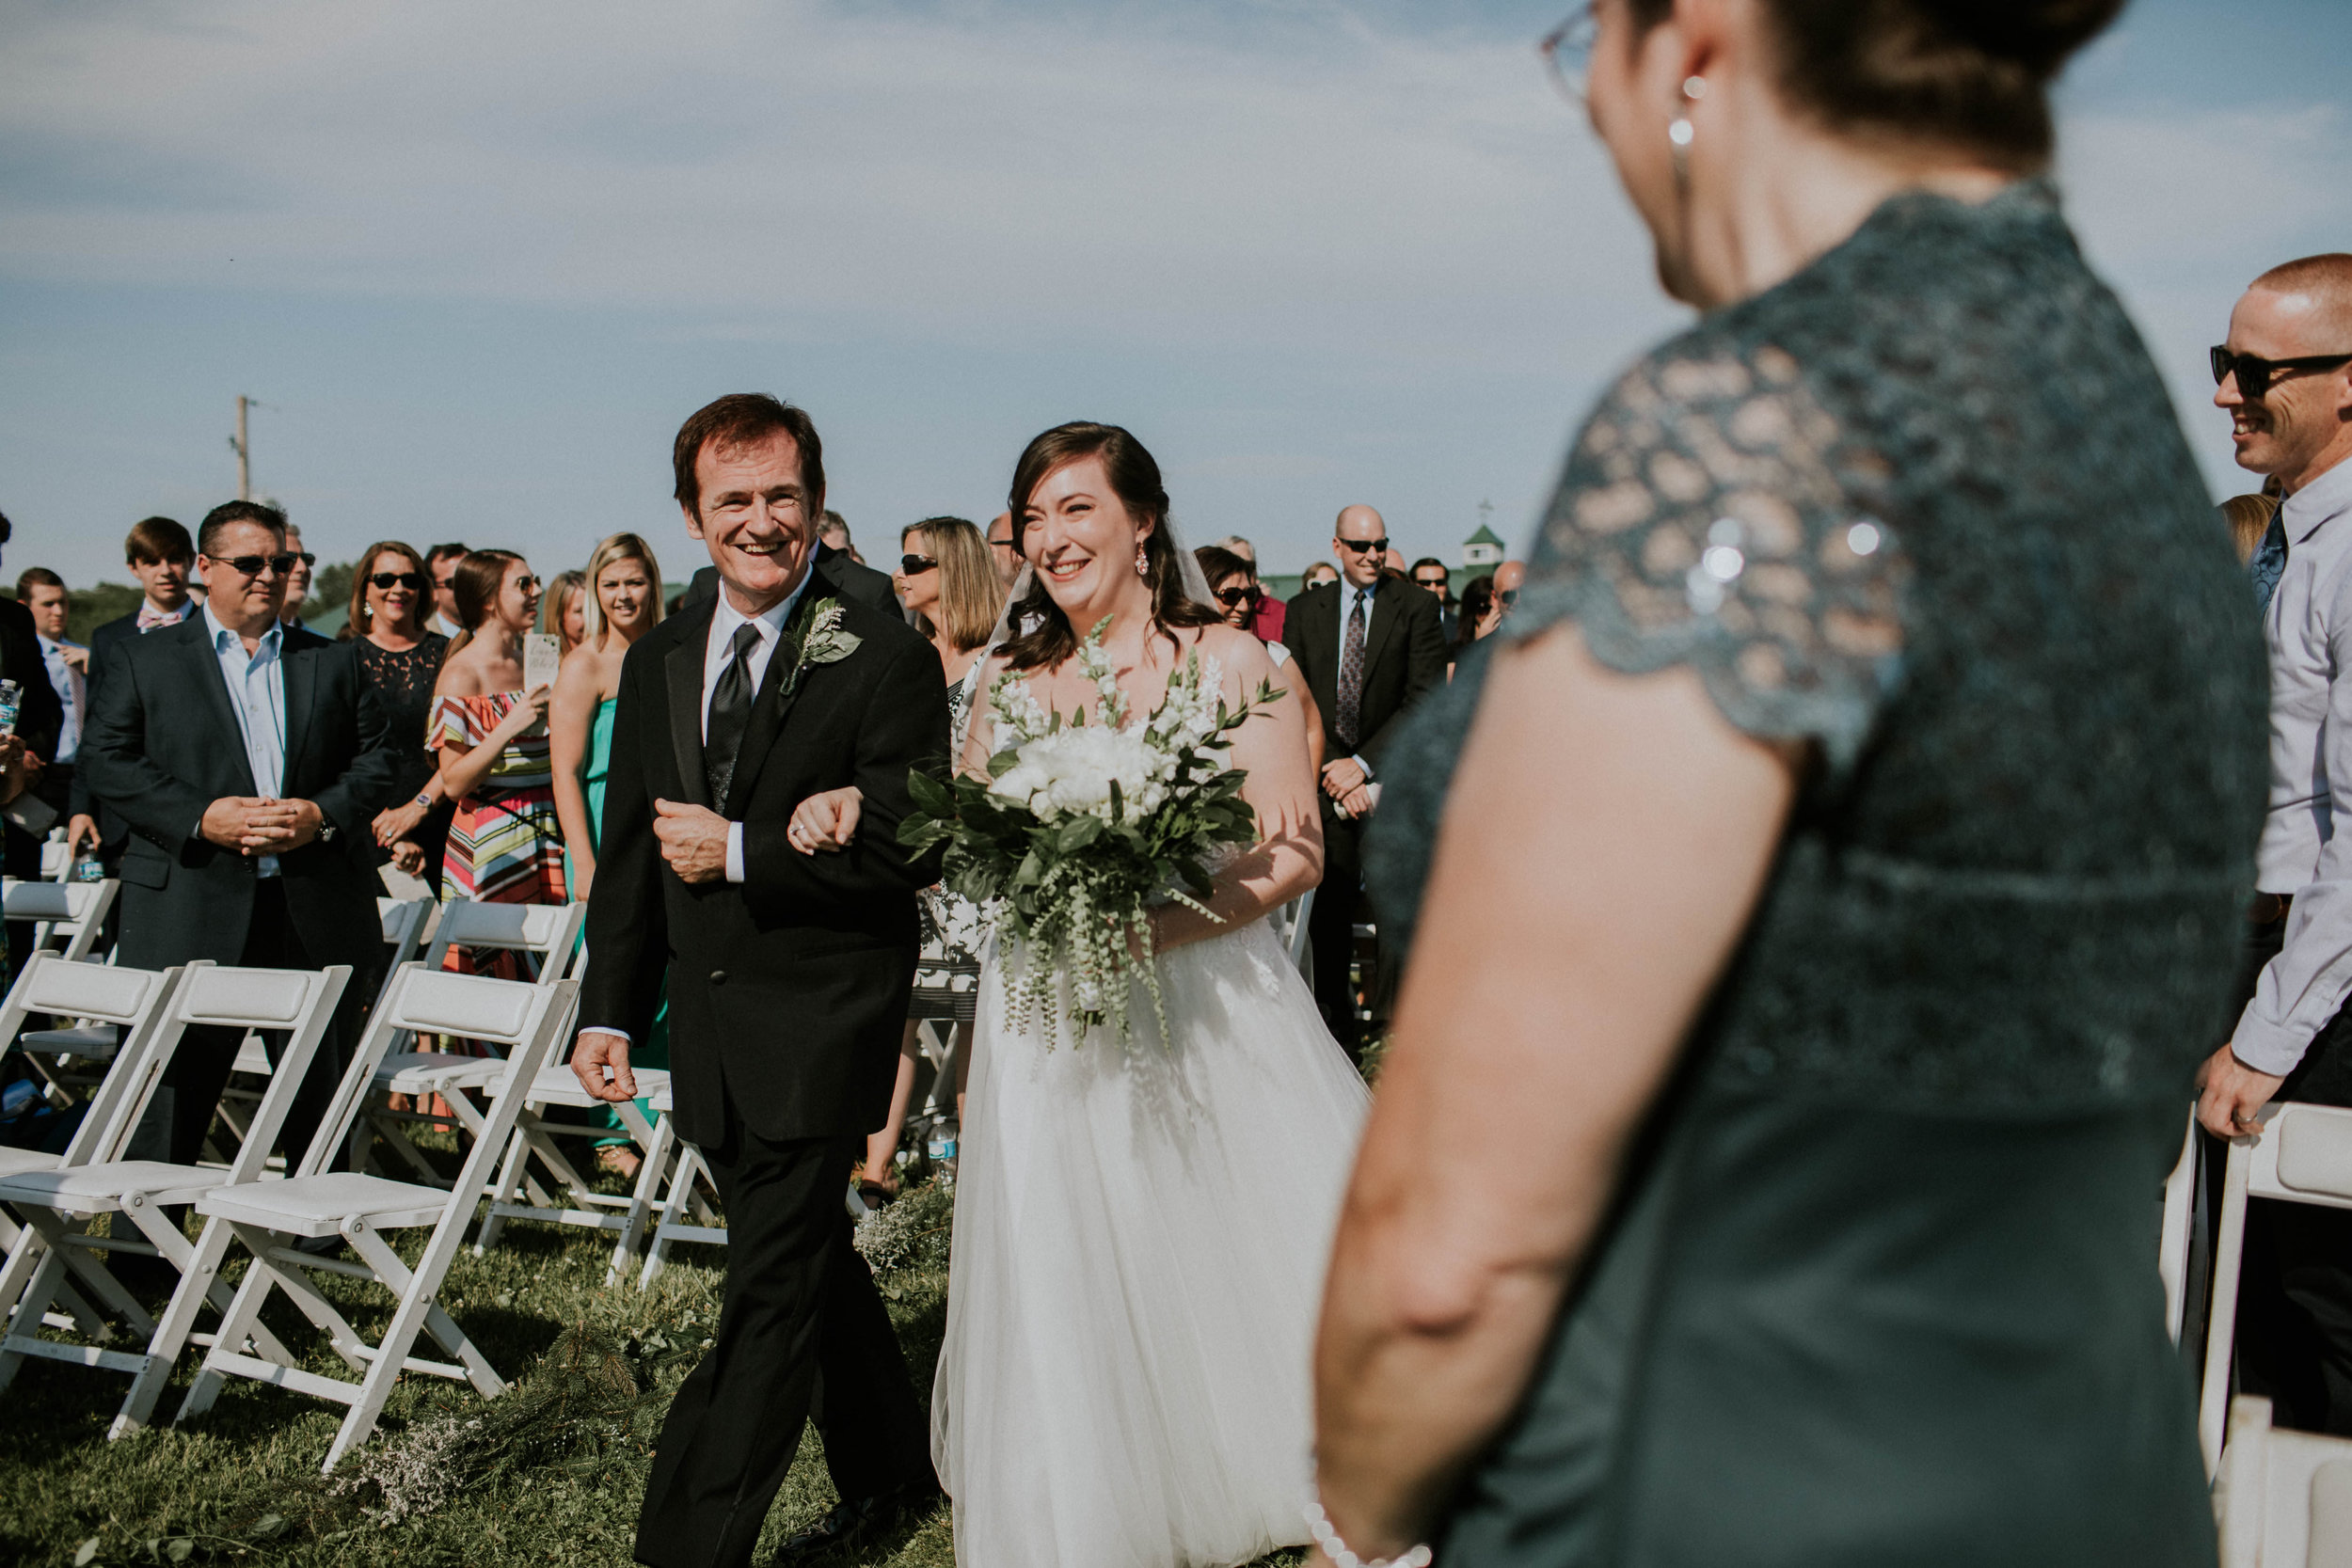 columbus ohio wedding photographer grace e jones photography135.jpg